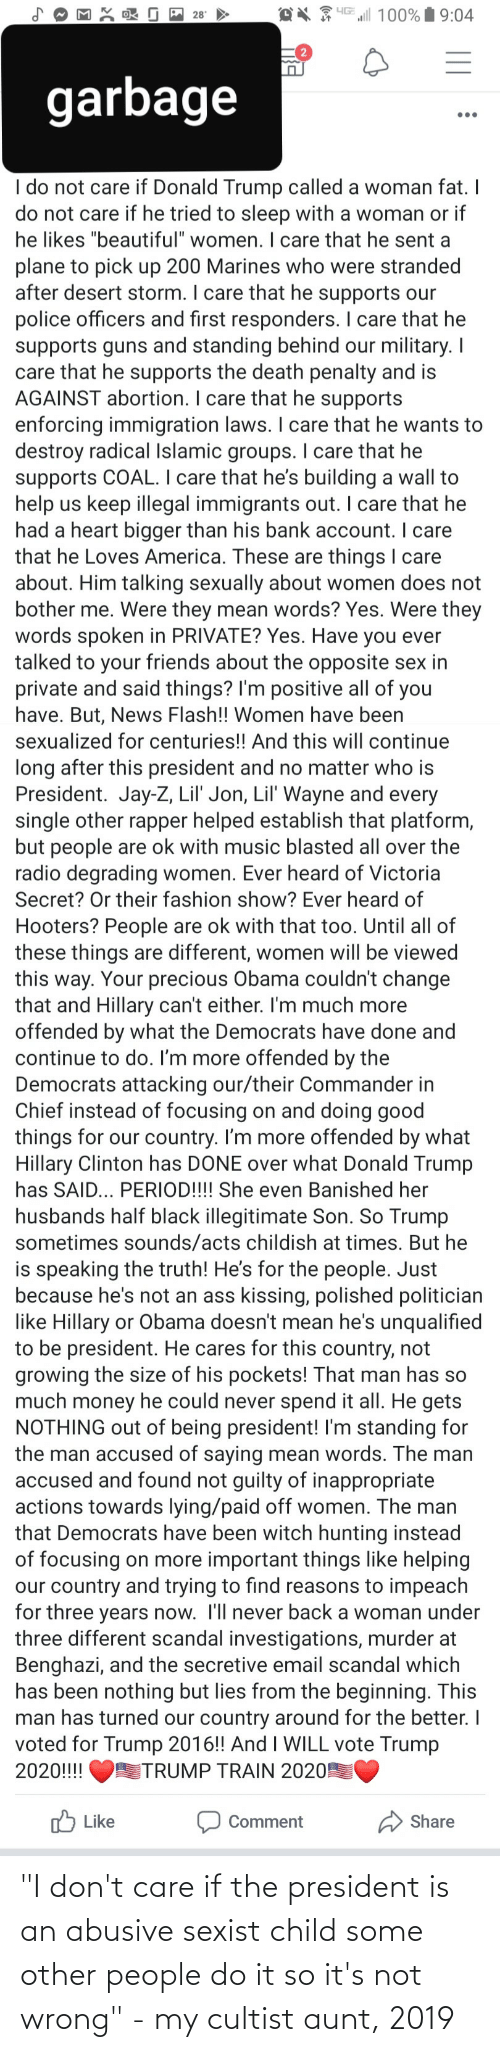 """Lil Jon: l 100% 9:04  28  garbage  •..  I do not care if Donald Trump called a woman fat. I  do not care if he tried to sleep with a woman or if  he likes """"beautiful"""" women. I care that he sent a  plane to pick up 200 Marines who were stranded  after desert storm. I care that he supports our  police officers and first responders. I care that he  supports guns and standing behind our military. I  care that he supports the death penalty and is  AGAINST abortion. I care that he supports  enforcing immigration laws. I care that he wants to  destroy radical Islamic groups. I care that he  supports COAL. I care that he's building a wall to  help us keep illegal immigrants out. I care that he  had a heart bigger than his bank account. I care  that he Loves America. These are things I care  about. Him talking sexually about women does not  bother me. Were they mean words? Yes. Were they  words spoken in PRIVATE? Yes. Have you ever  talked to your friends about the opposite sex in  private and said things? I'm positive all of you  have. But, News Flash!! Women have been  sexualized for centuries!! And this will continue  long after this president and no matter who is  President. Jay-Z, Lil' Jon, Lil' Wayne and every  single other rapper helped establish that platform,  but people are ok with music blasted all over the  radio degrading women. Ever heard of Victoria  Secret? Or their fashion show? Ever heard of  Hooters? People are ok with that too. Until all of  these things are different, women will be viewed  this way. Your precious Obama couldn't change  that and Hillary can't either. I'm much more  offended by what the Democrats have done and  continue to do. I'm more offended by the  Democrats attacking our/their Commander in  Chief instead of focusing on and doing good  things for our country. I'm more offended by what  Hillary Clinton has DONE over what Donald Trump  has SAID... PERIOD!!!! She even Banished her  husbands half black illegitimate Son. So Trump  sometimes"""